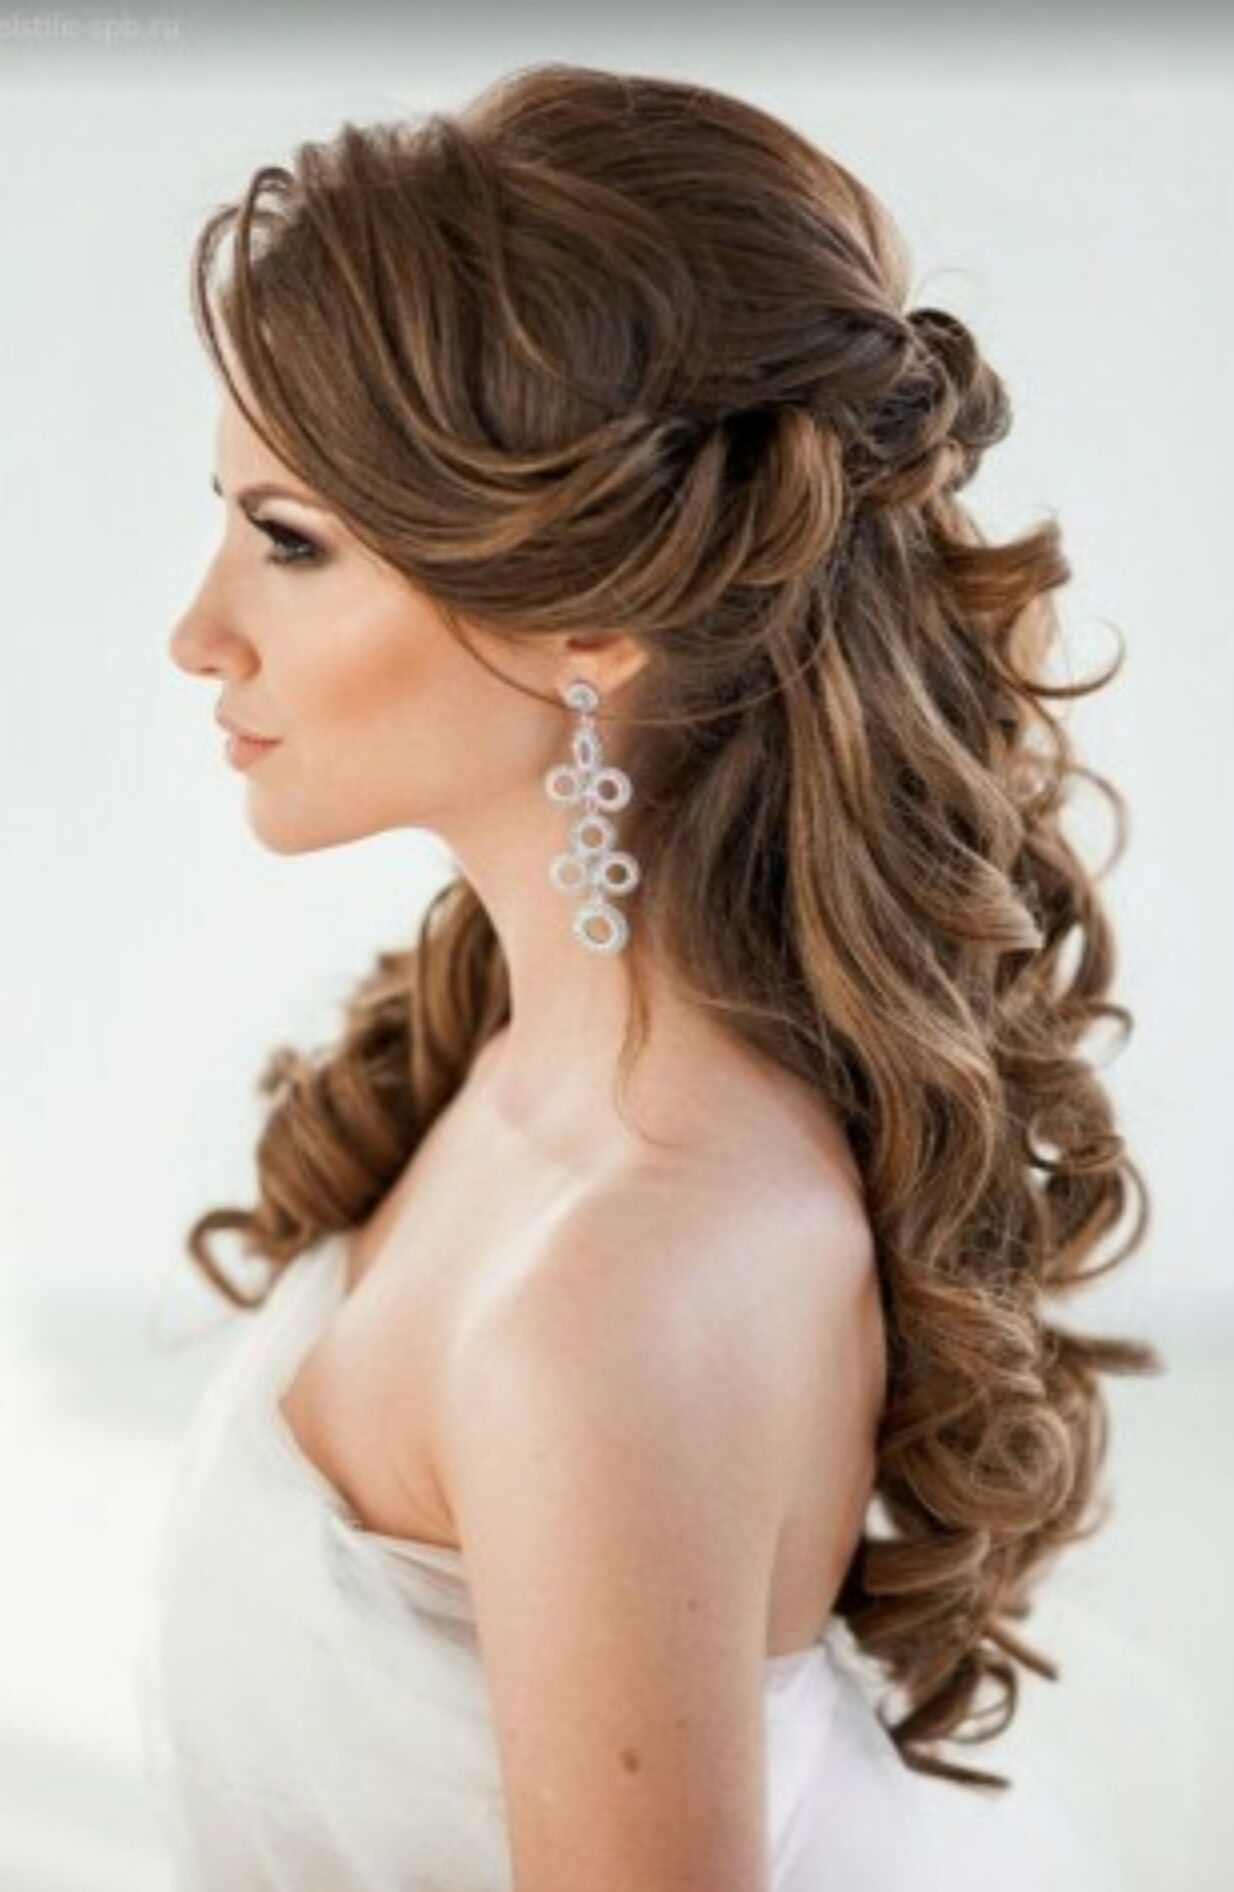 Pin by lillian crespo on hair pinterest